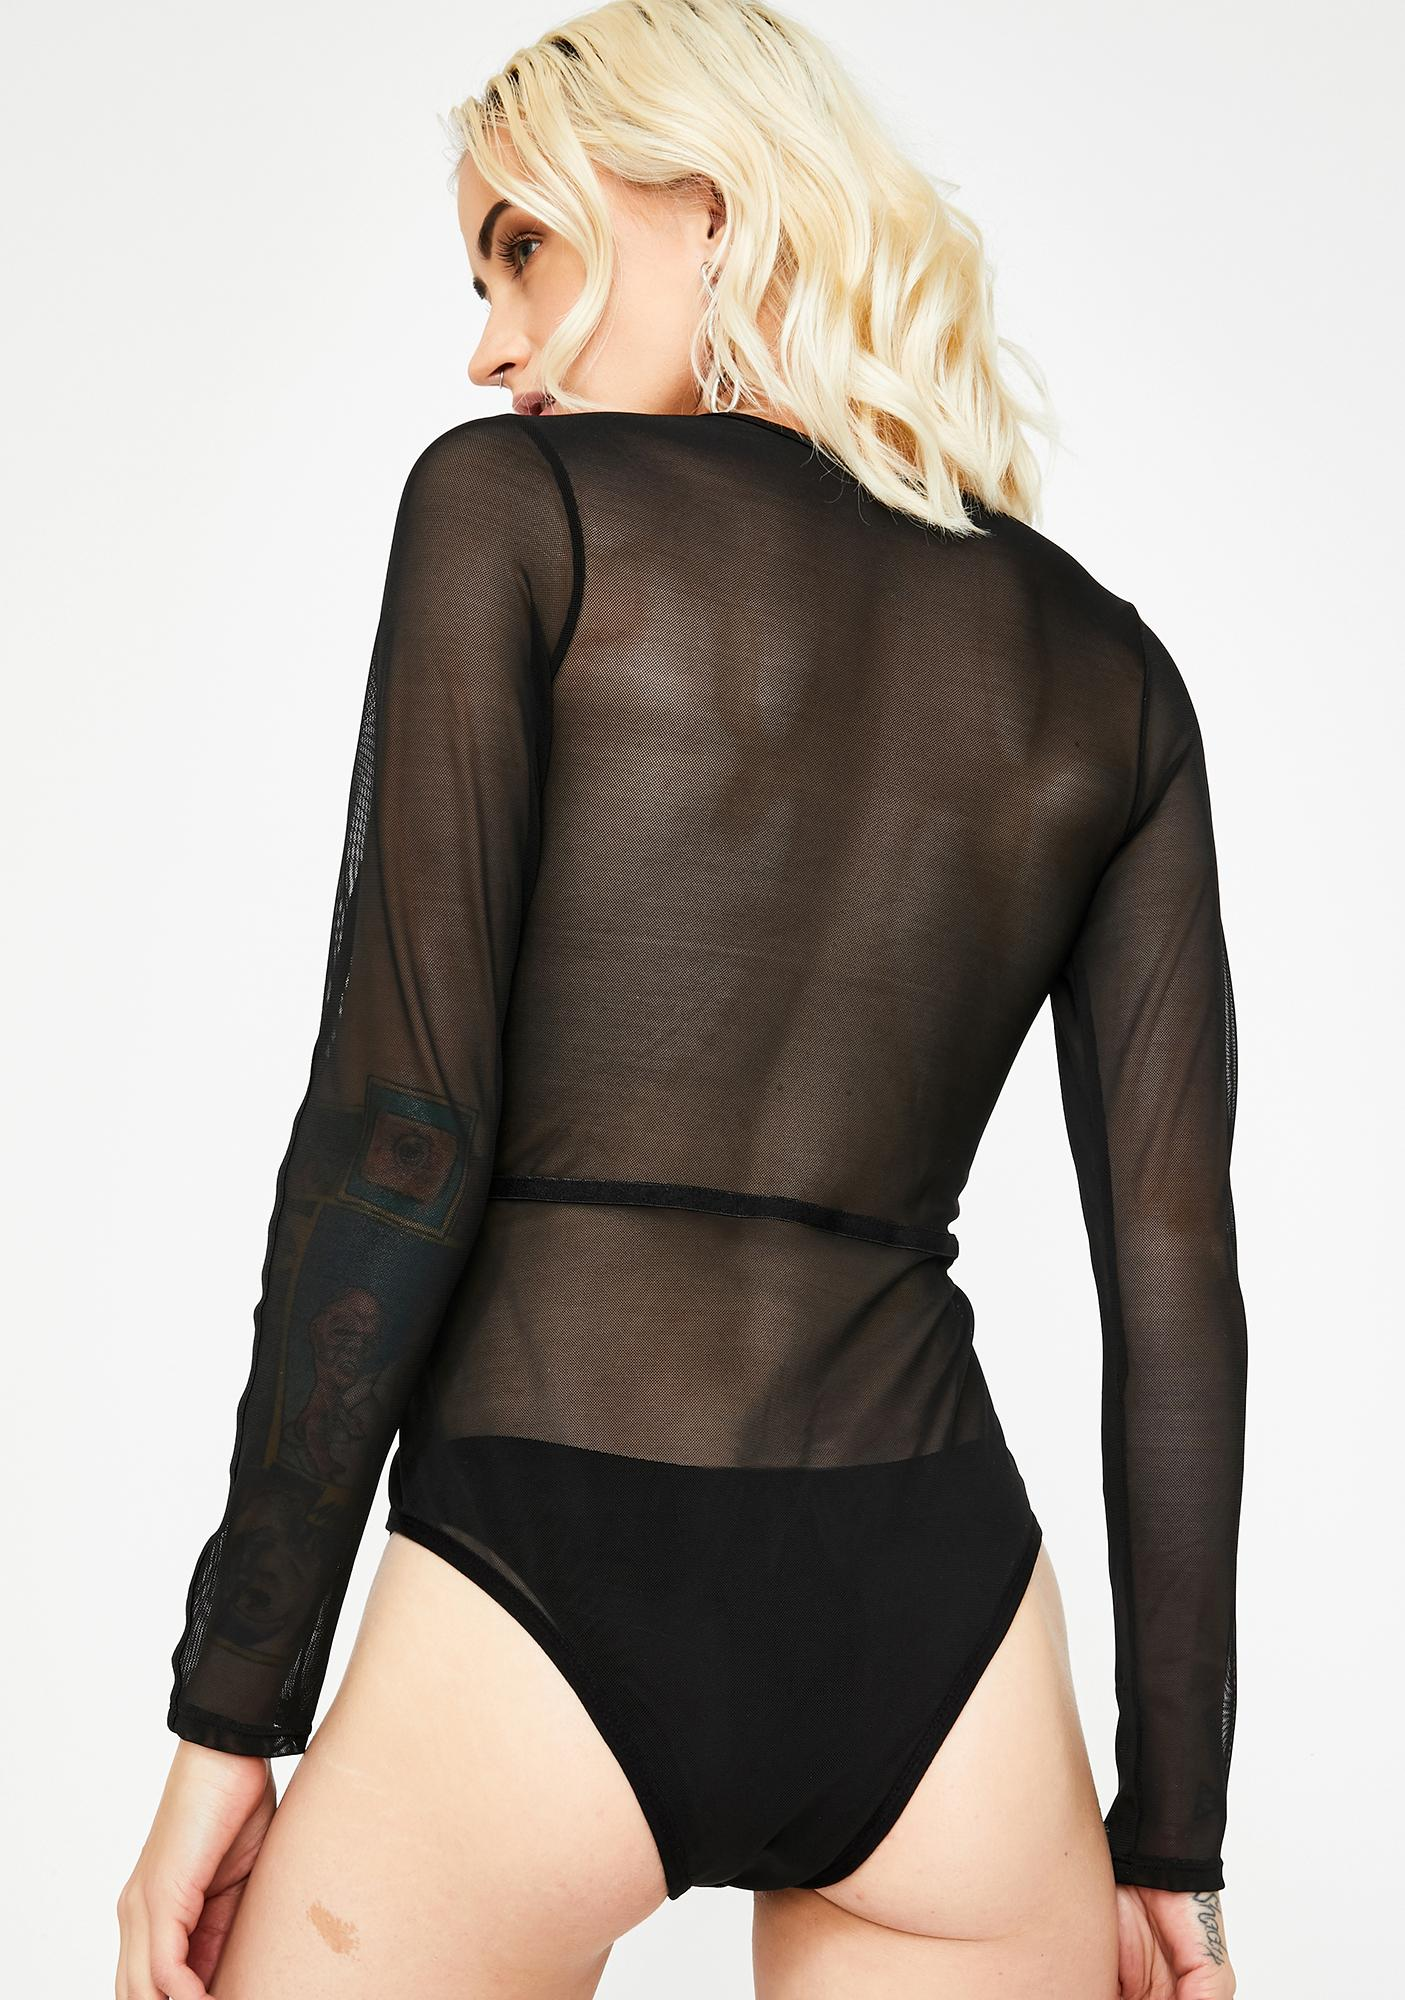 Let's Hook Up Sheer Bodysuit